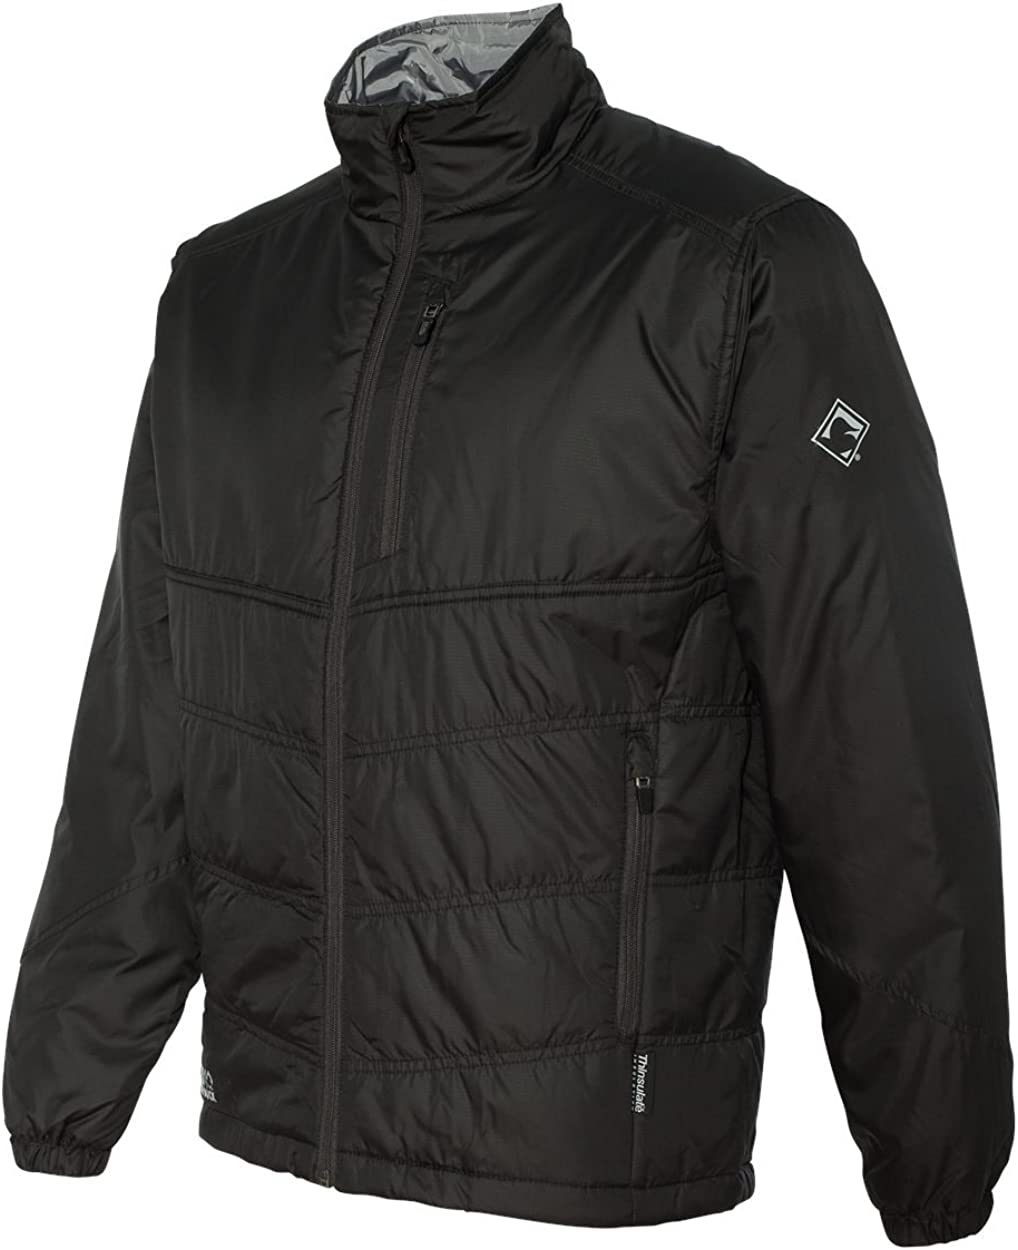 DRI DUCK 5321 Eclipse Thinsulate/™ Lined Puffer Jacket